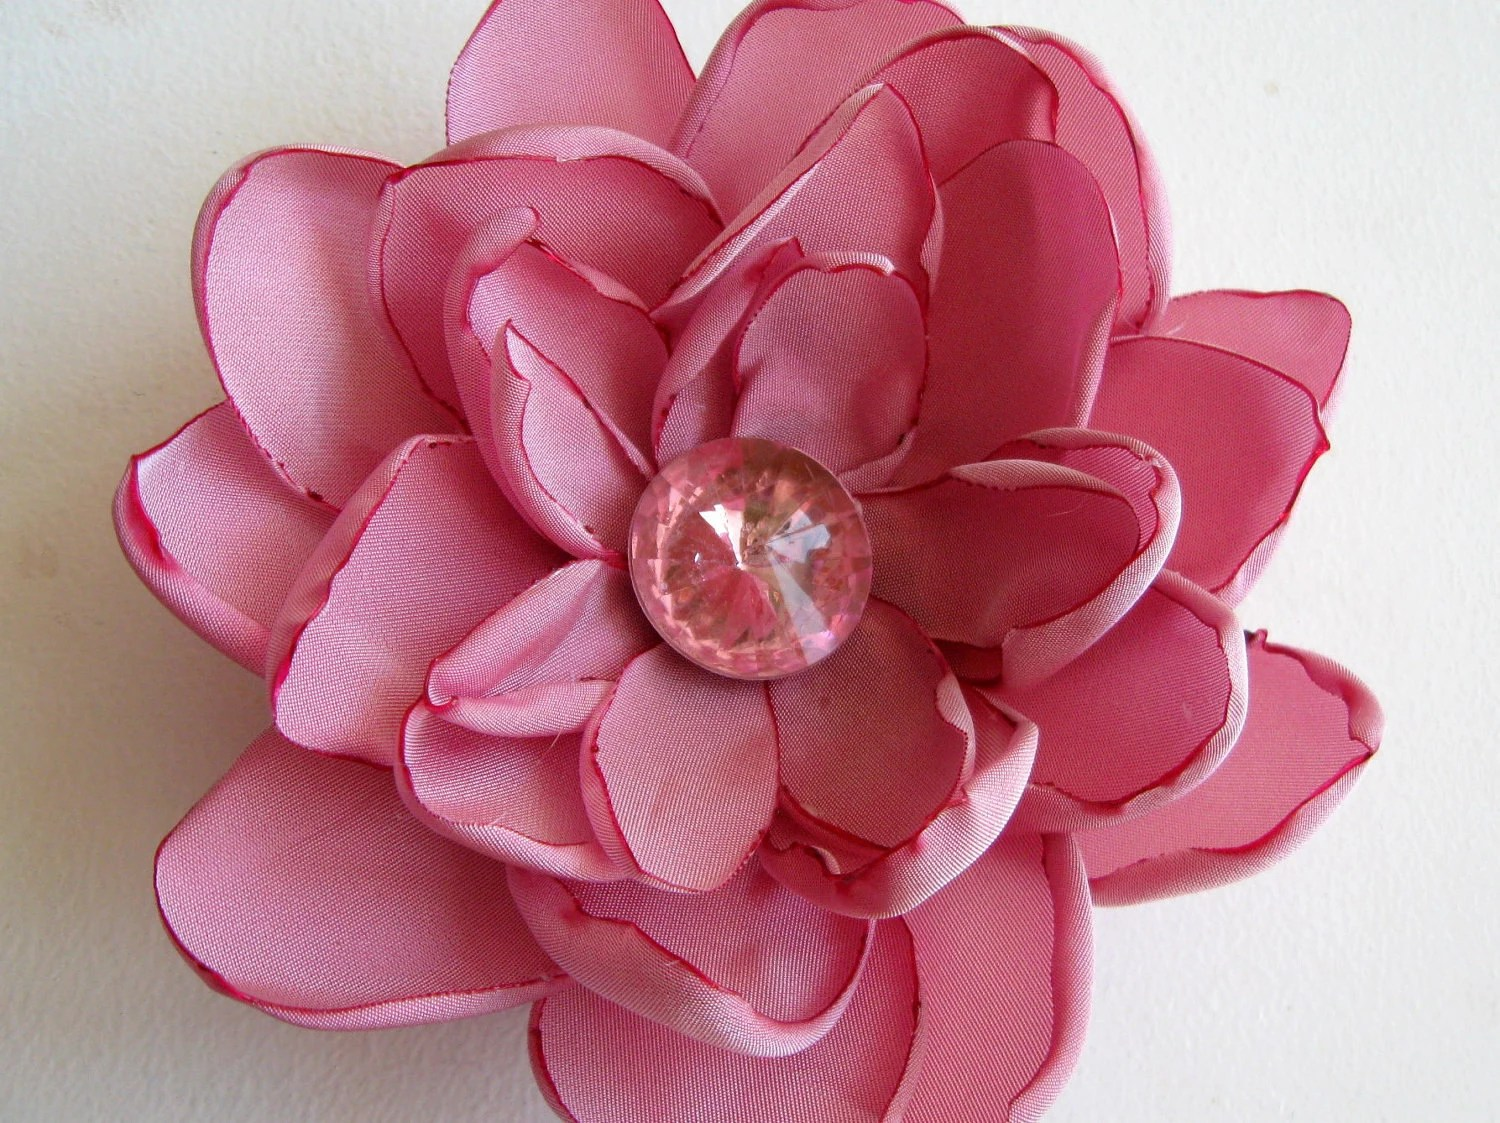 Honeysuckle pink lotus flower brooch: taffeta and pink faceted crystal center